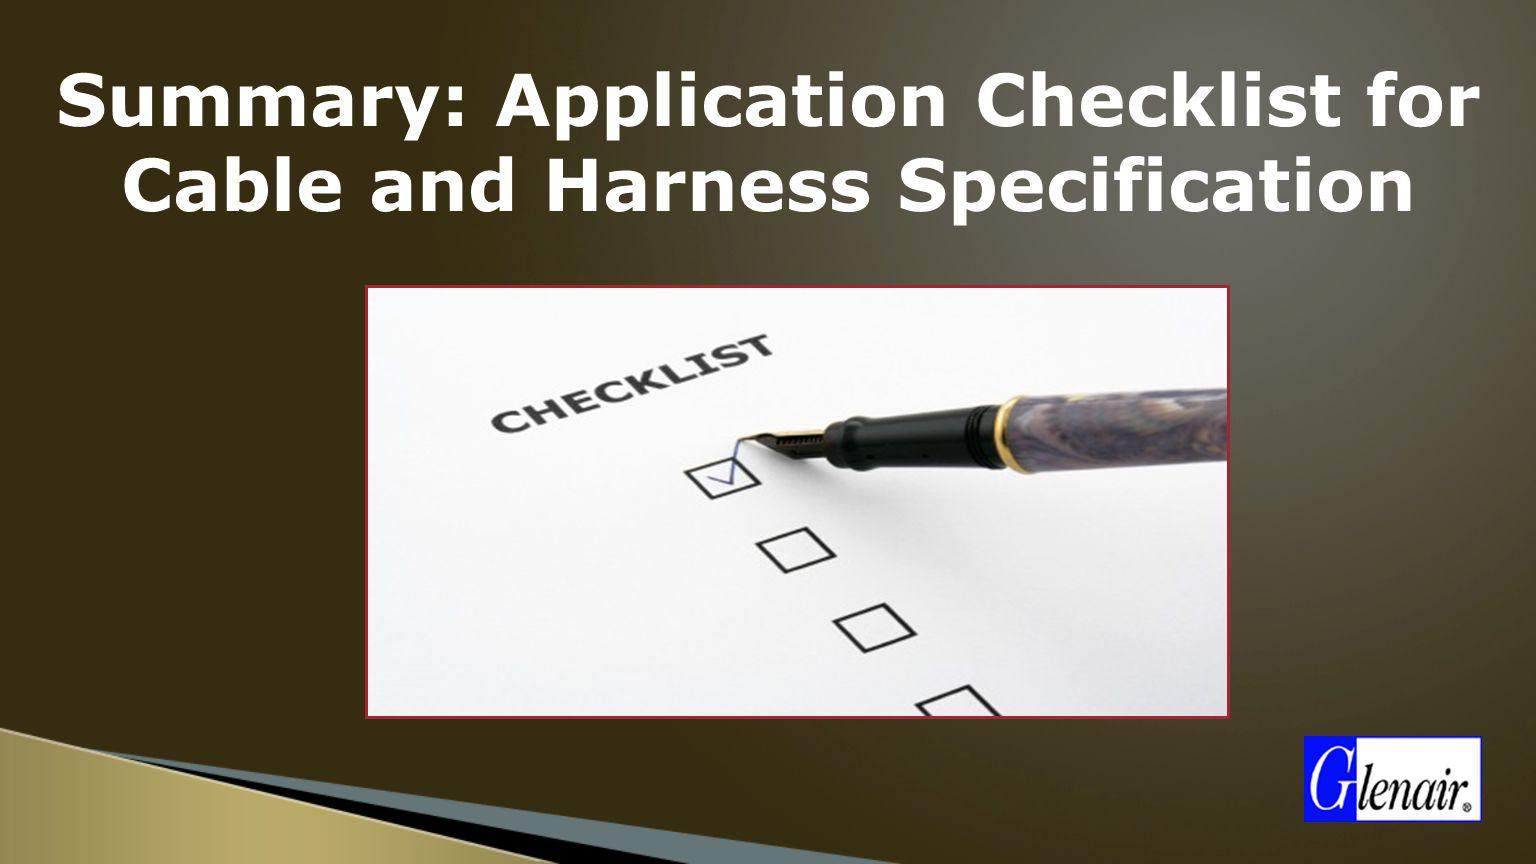 Summary: Application Checklist for Cable and Harness Specification